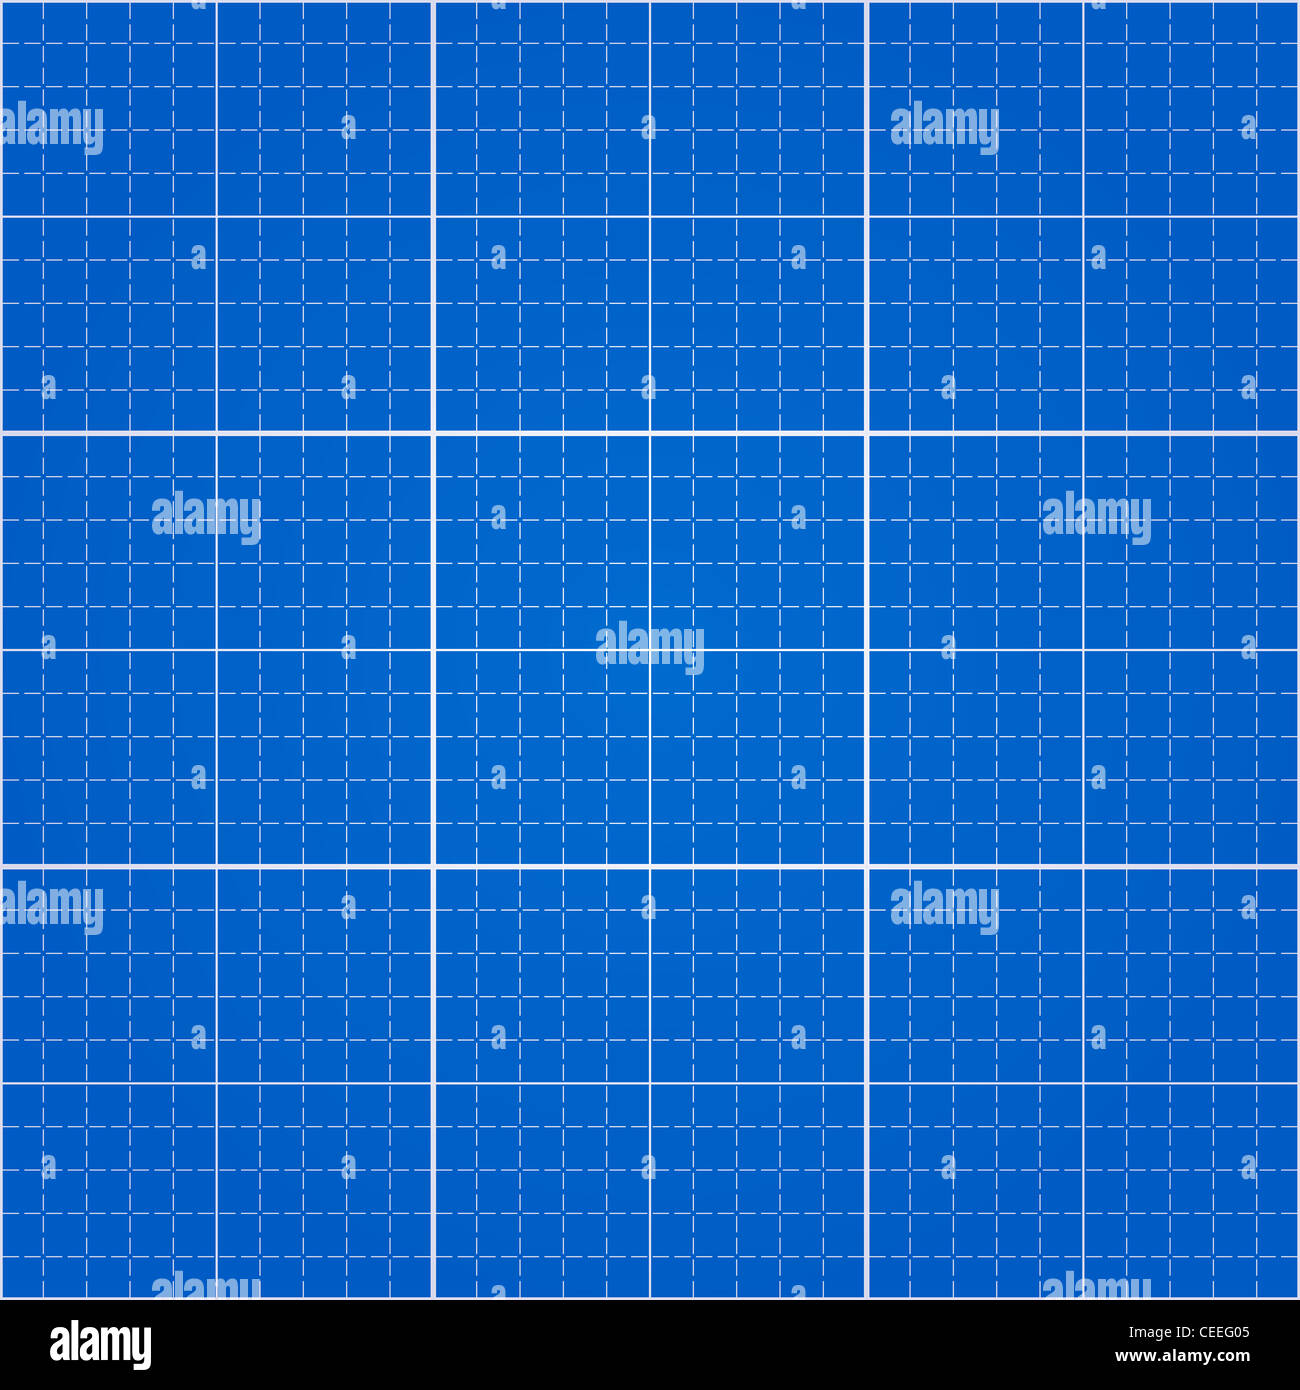 Seamless blueprint background engineering drawing blue paper stock seamless blueprint background engineering drawing blue paper background with pattern swatch in eps file malvernweather Gallery